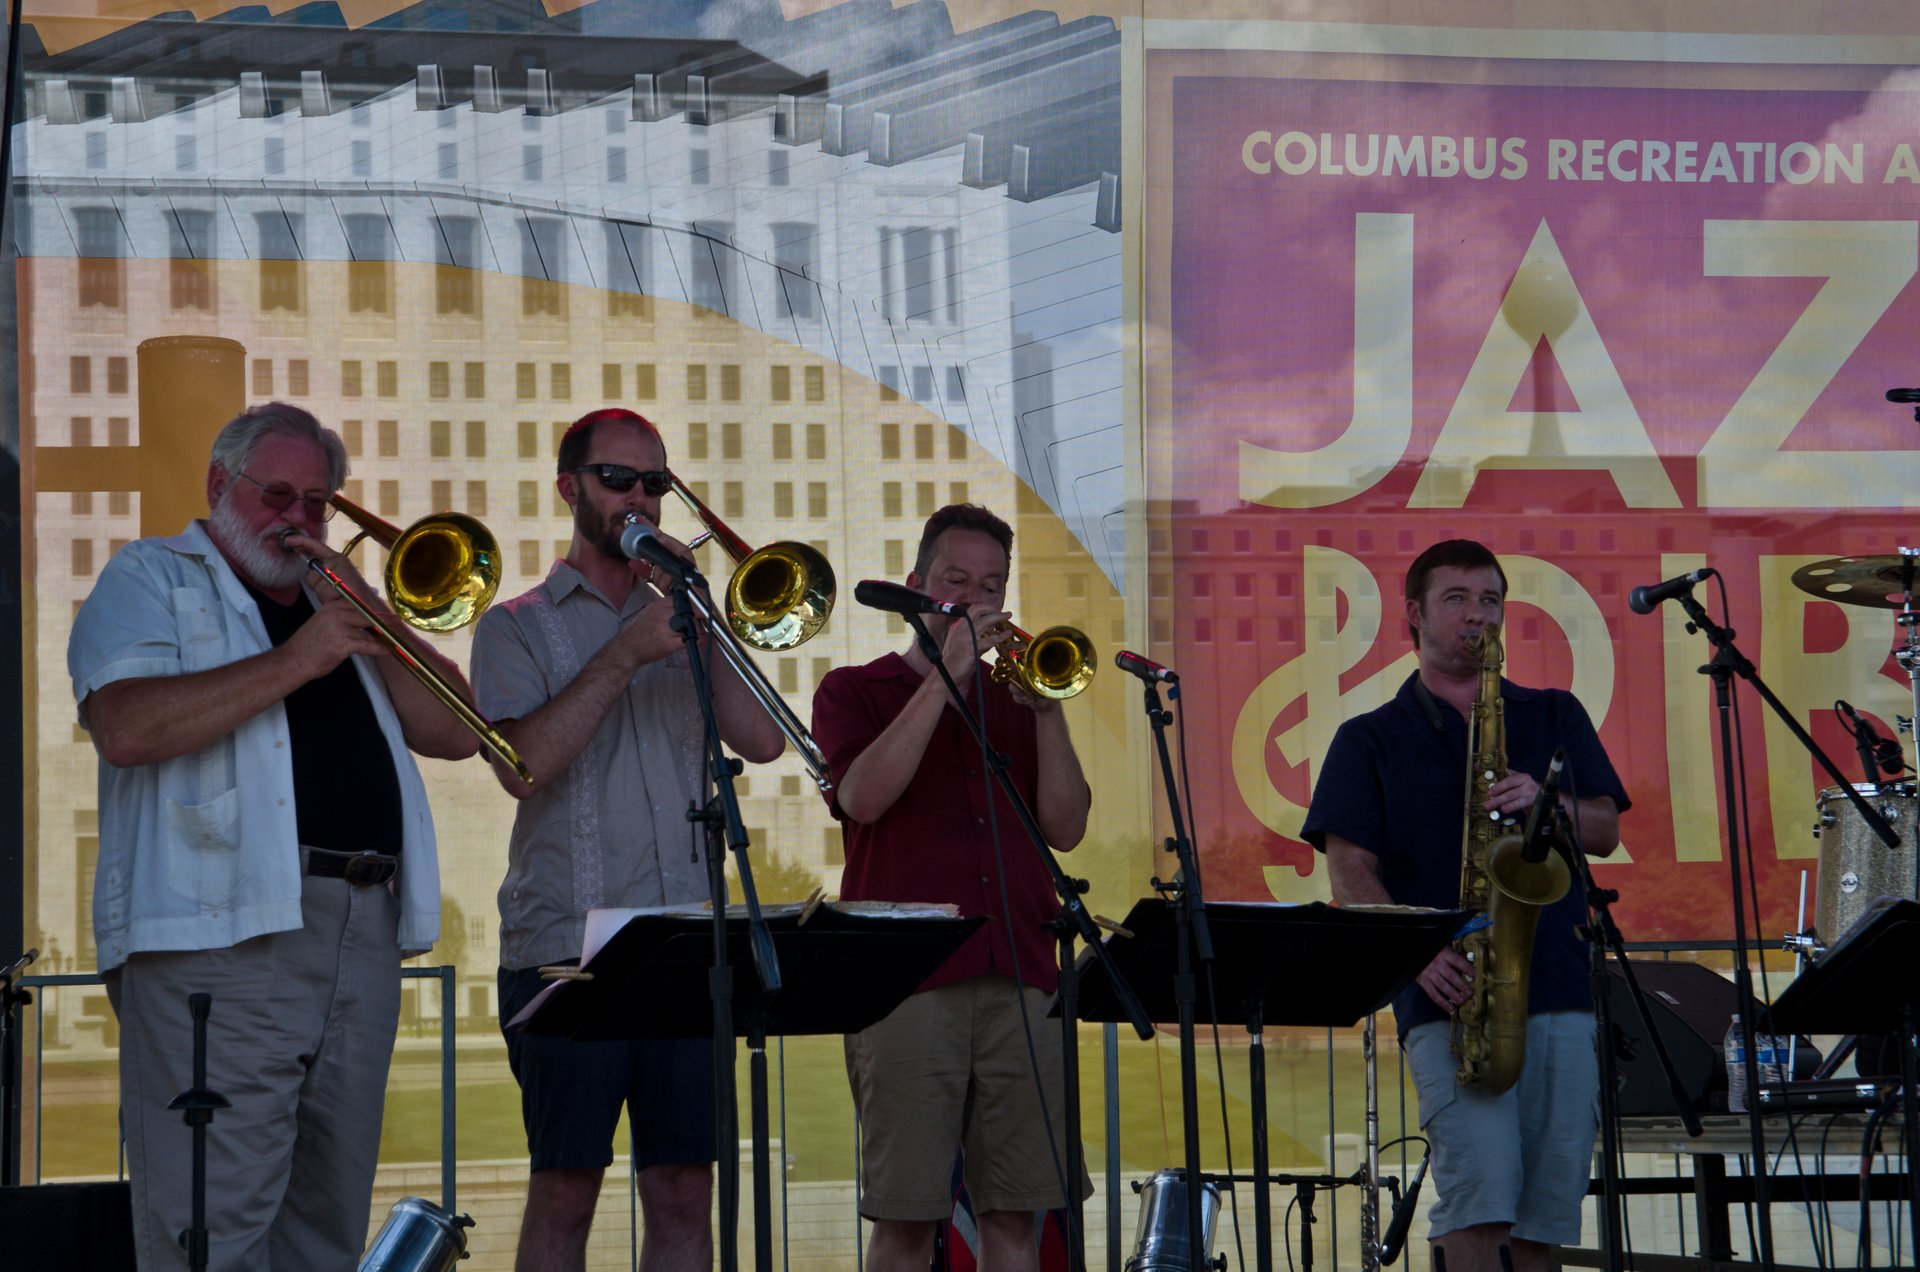 Columbus Jazz & Rib Fest in Ohio - Best Season 2020